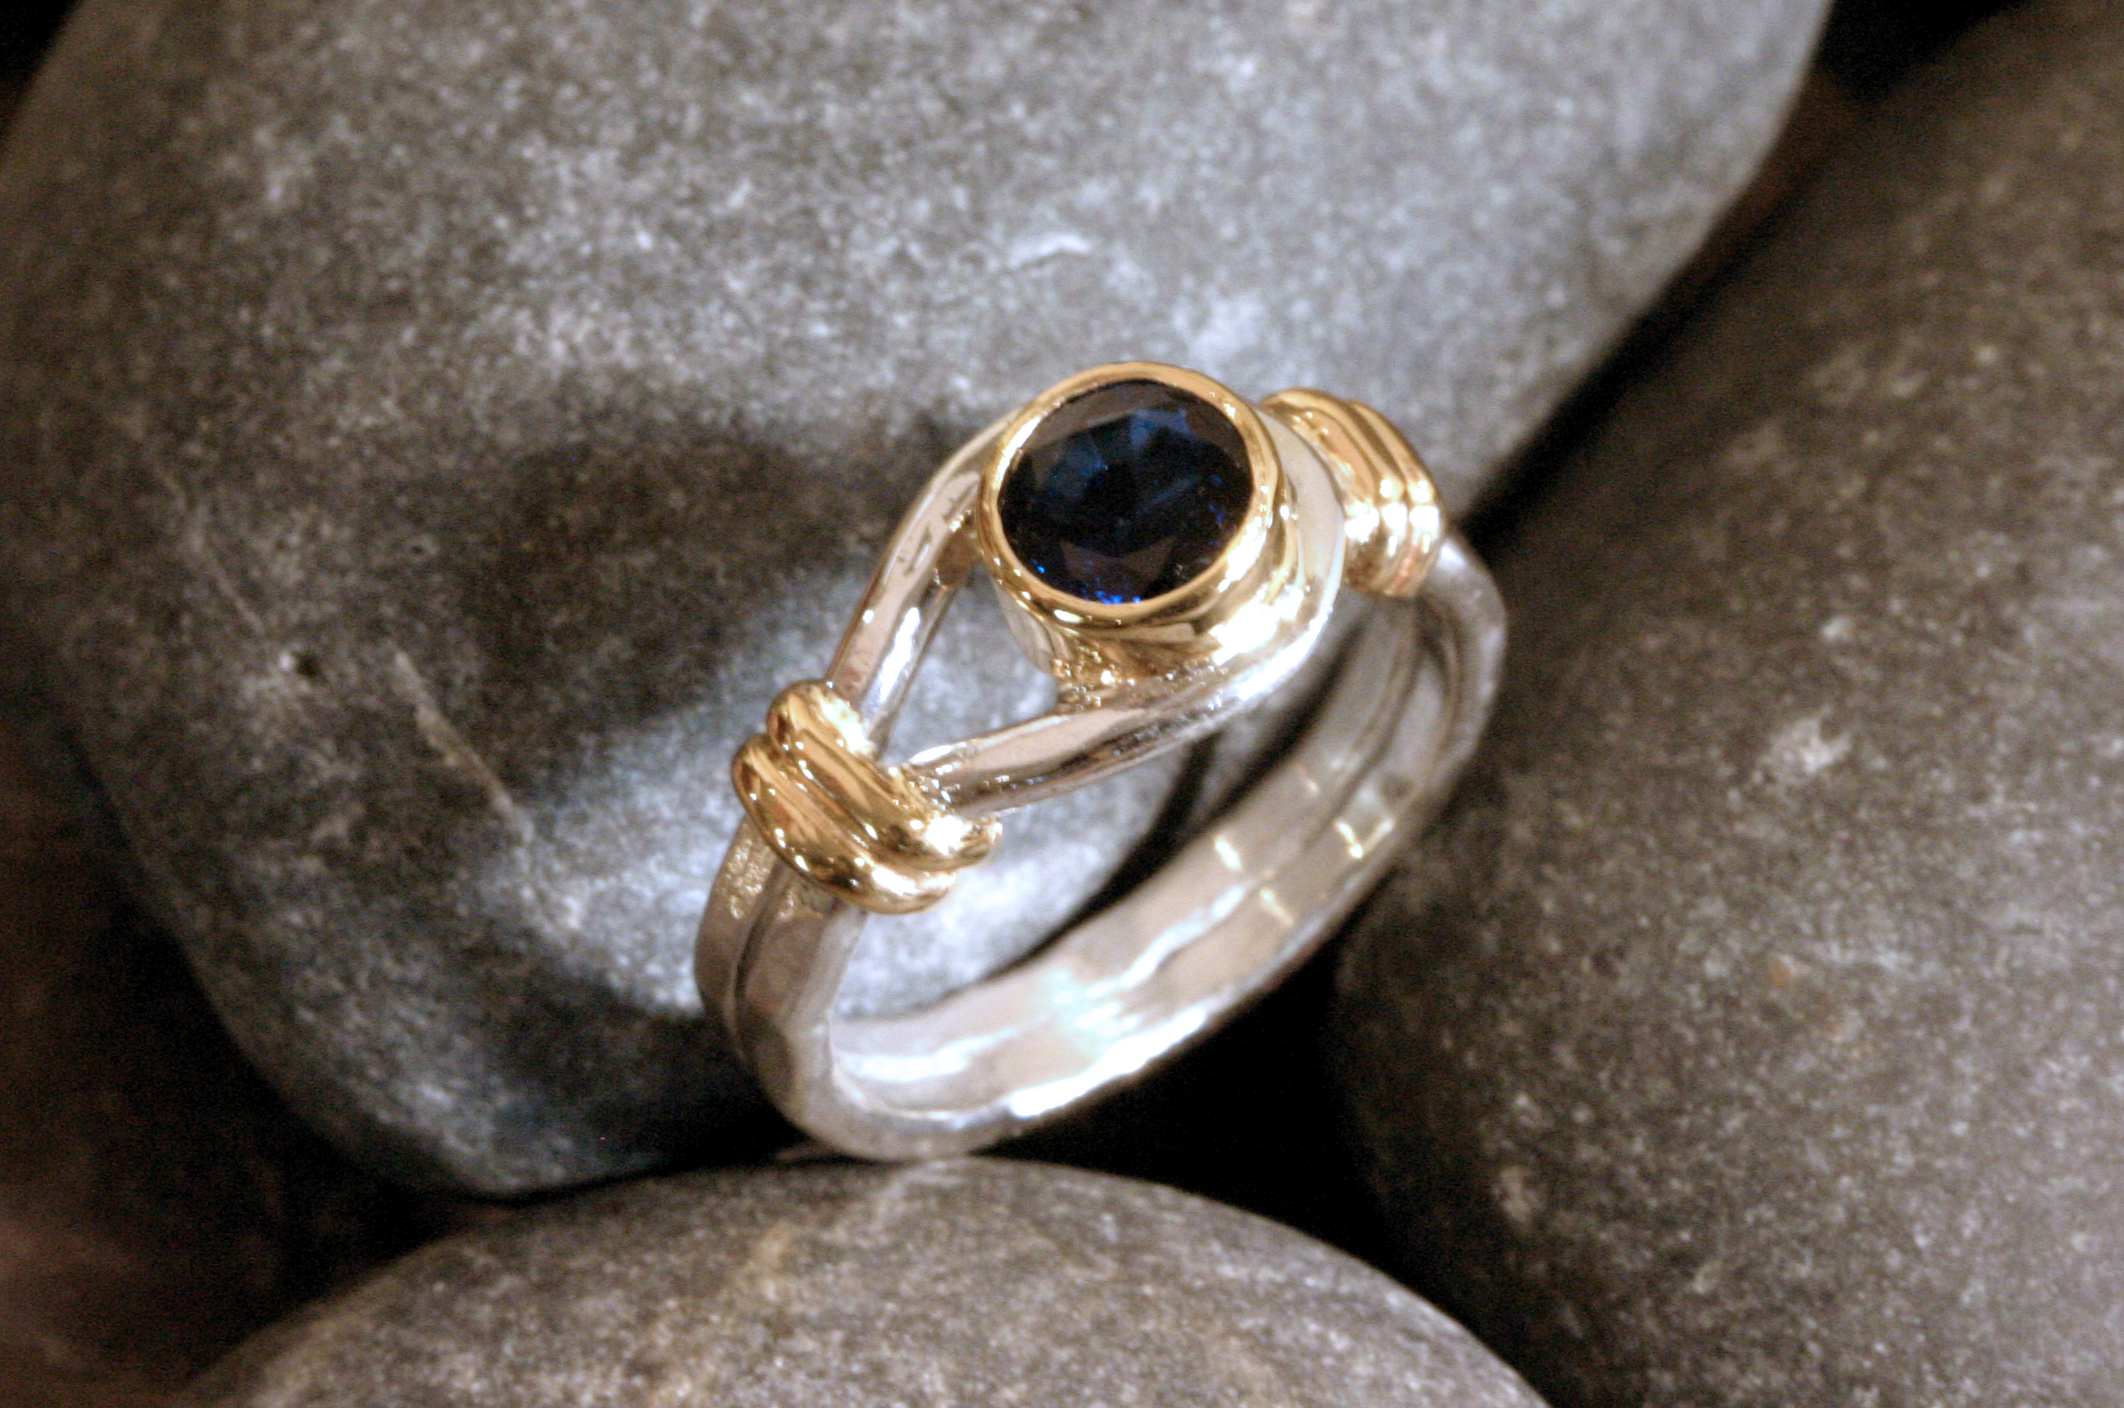 Sterling silver & 14K gold button ring with a bezel set blue sapphire for the button